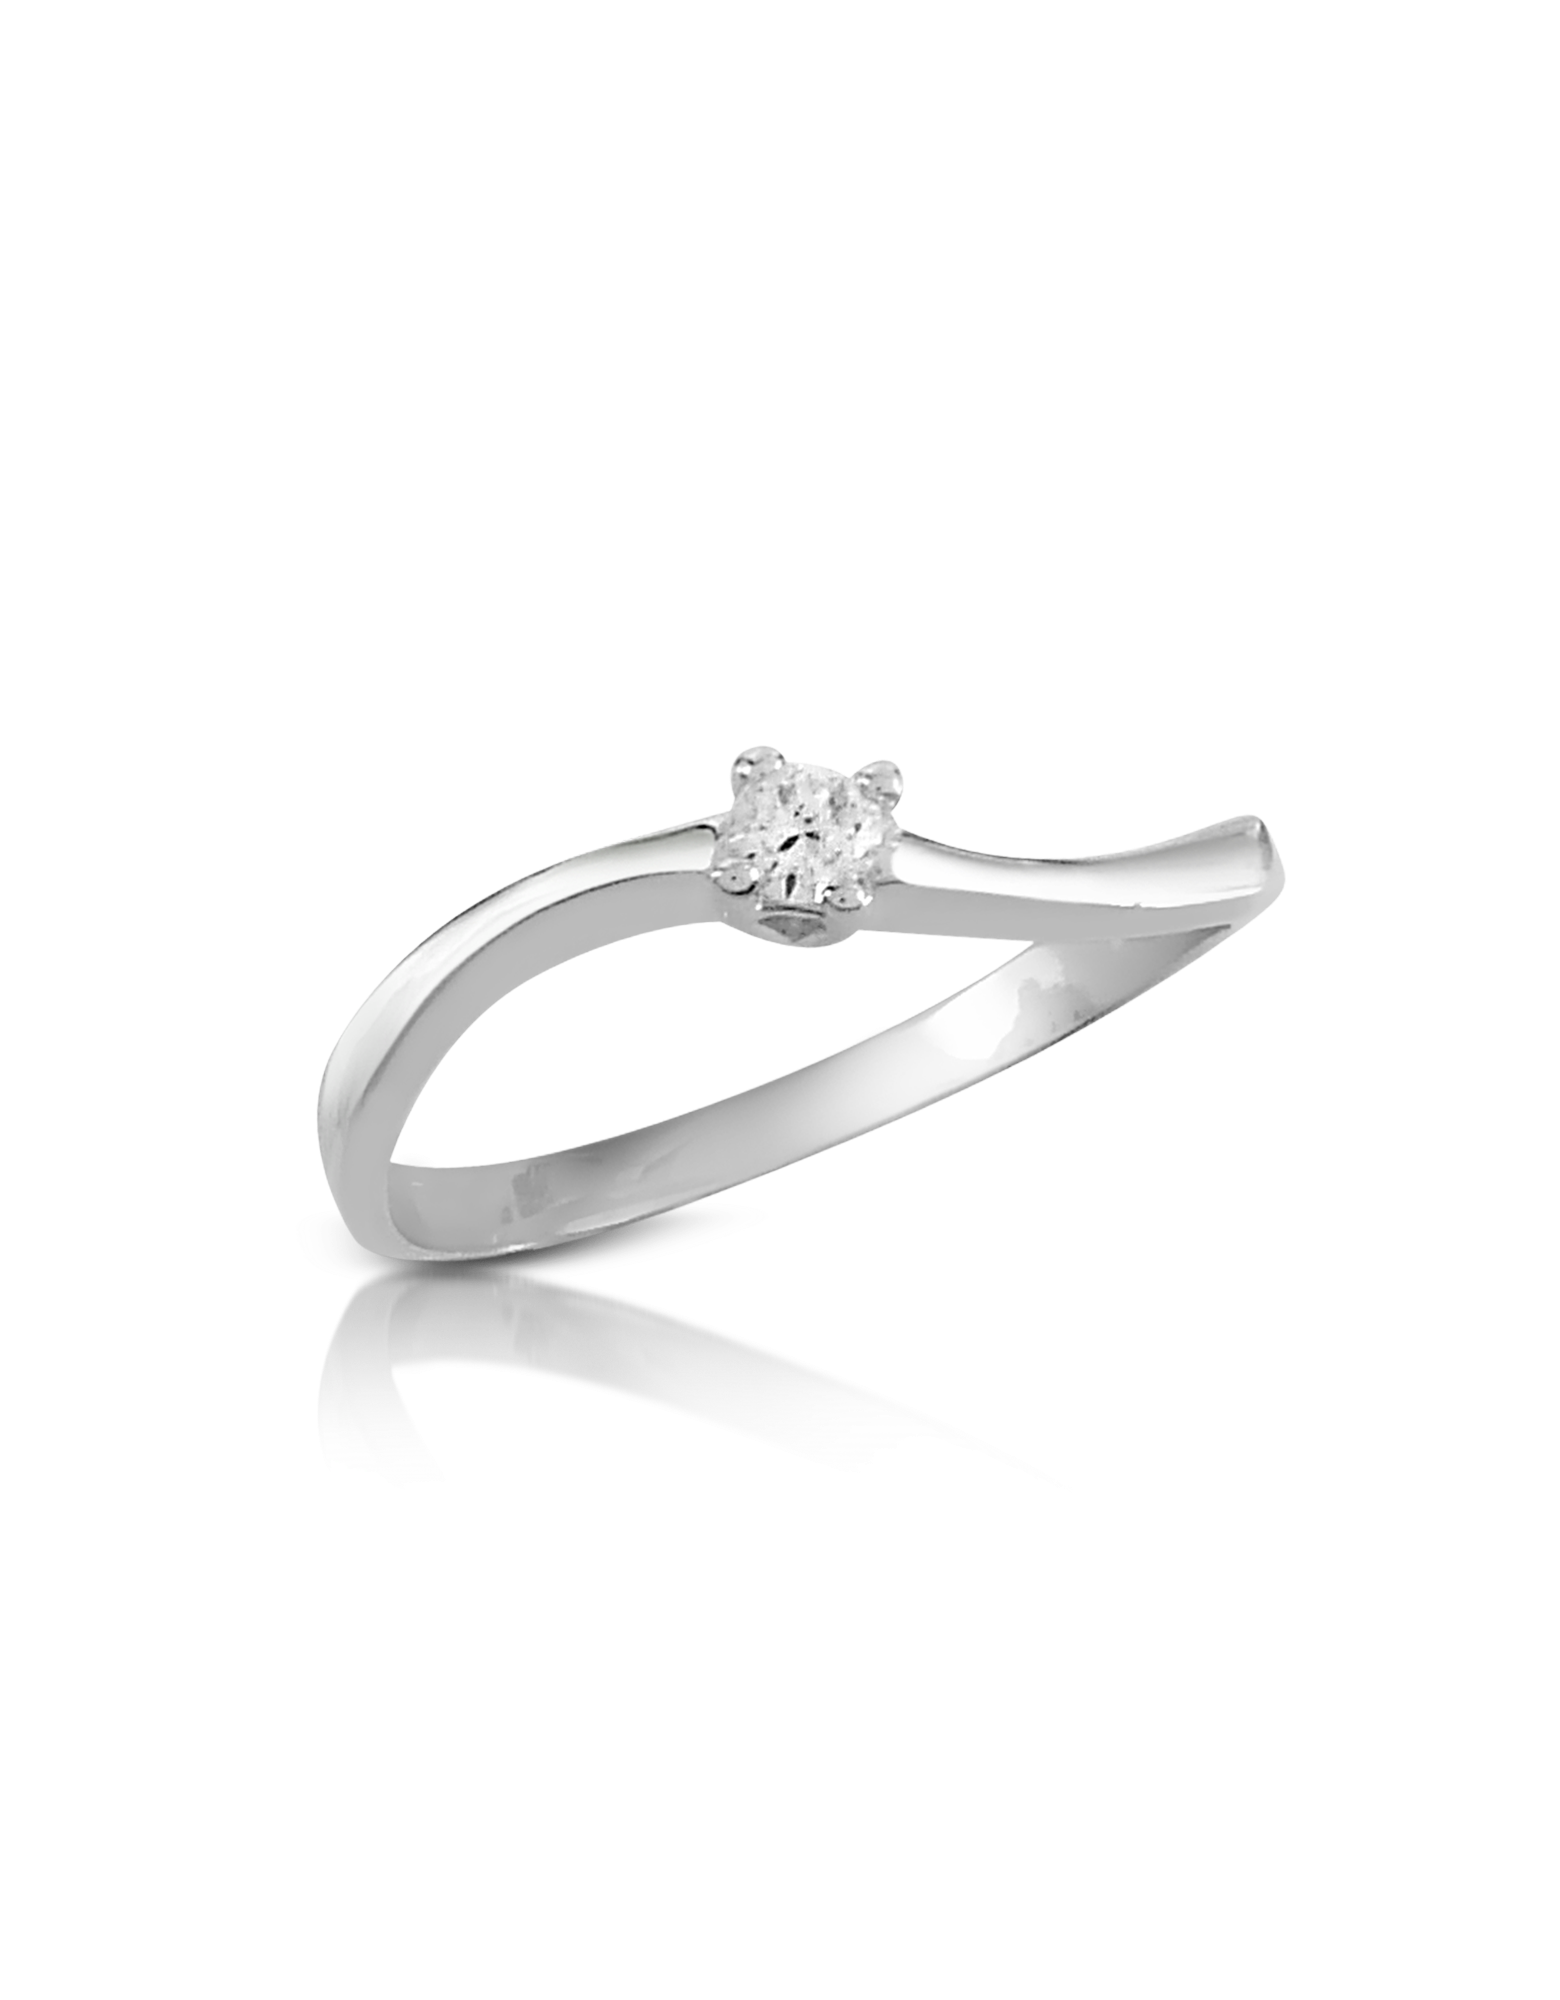 Image of 0.07 ct Prong-Set Diamond Solitaire Ring